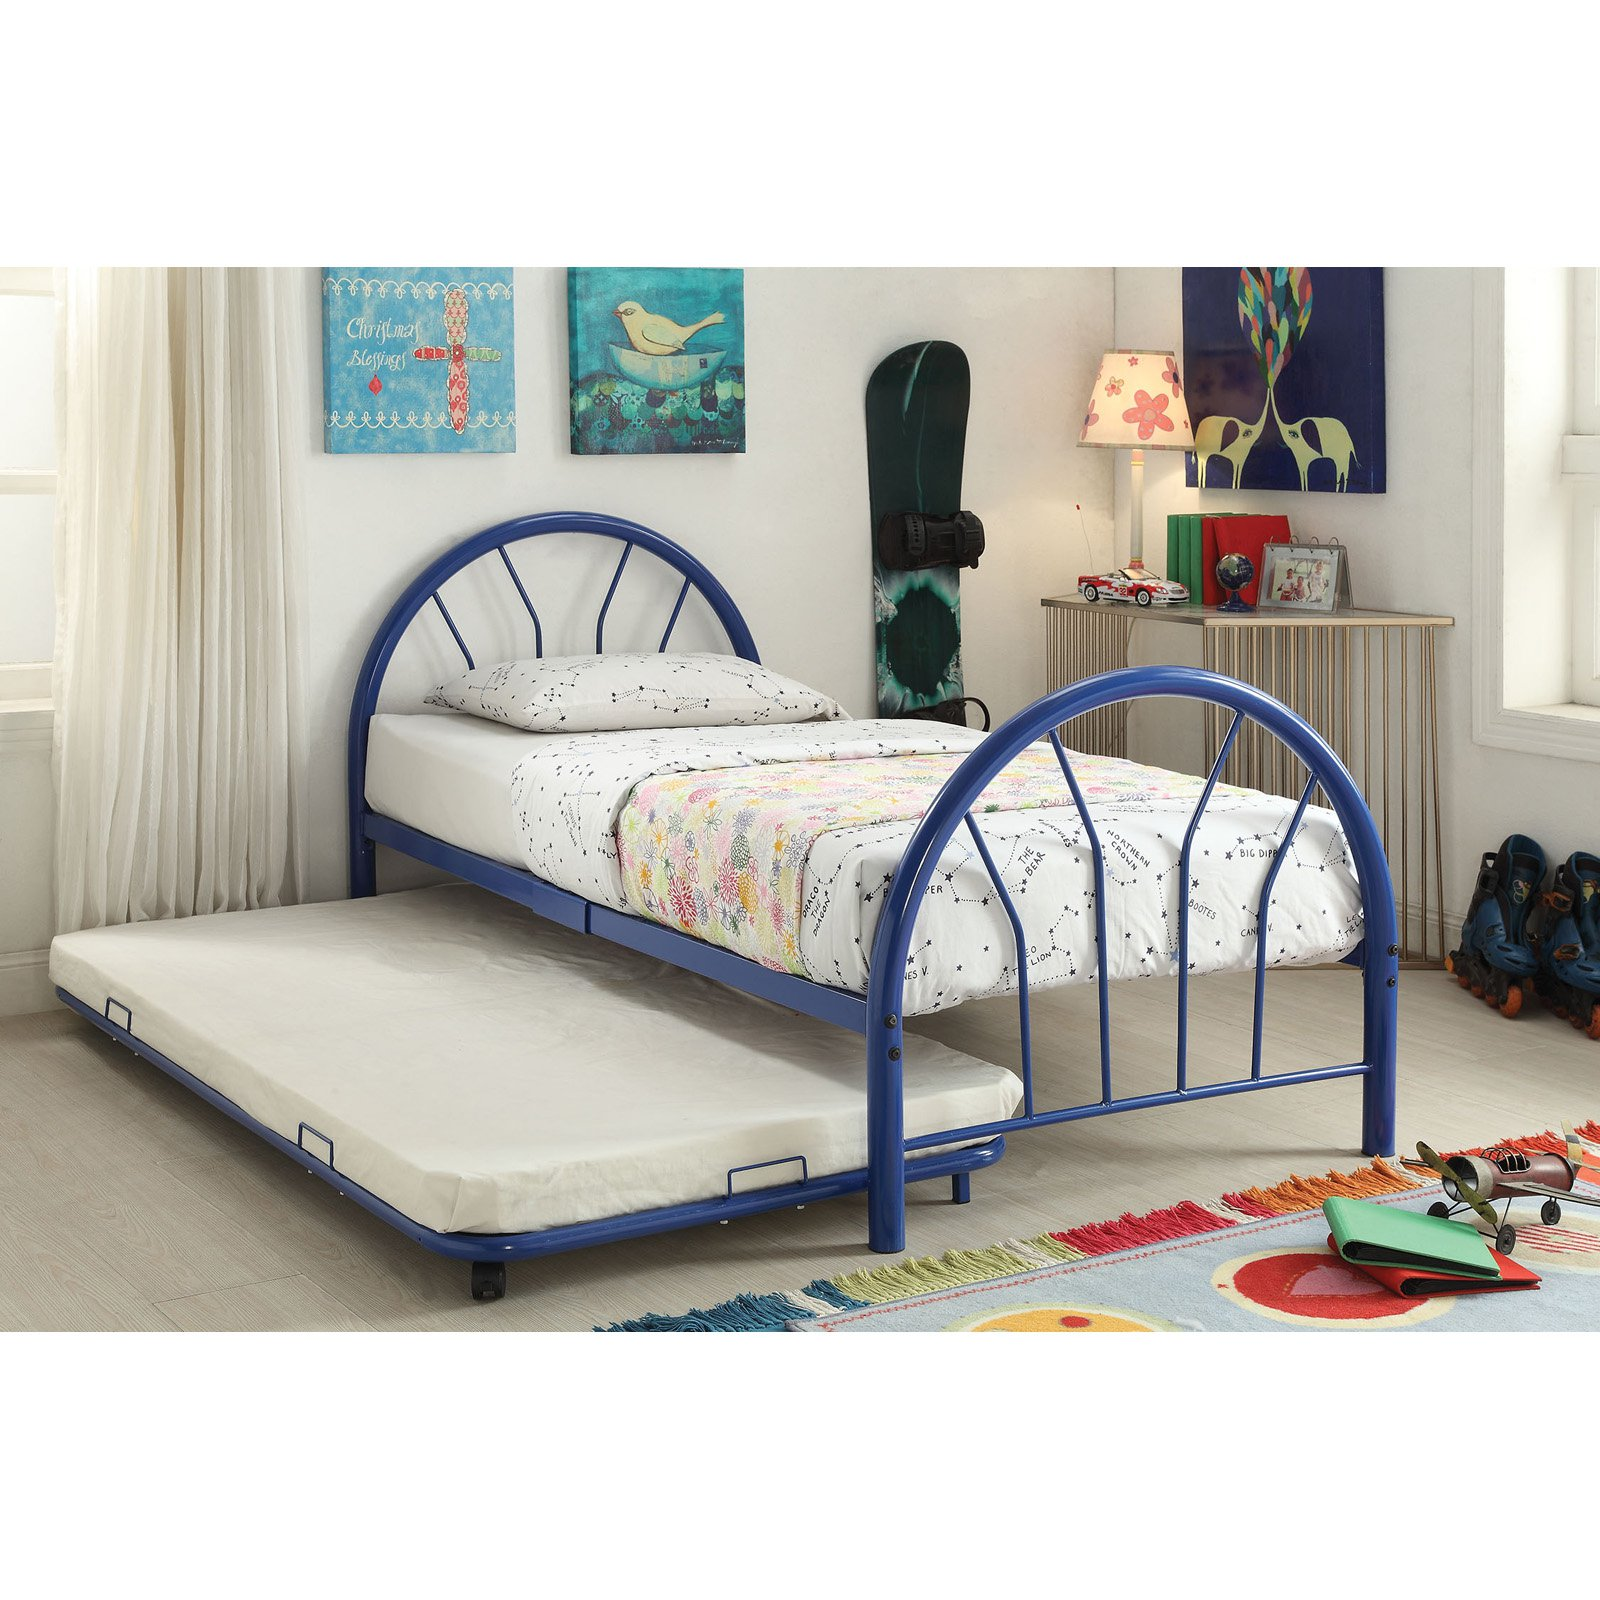 Silhouette Twin Bed, Blue